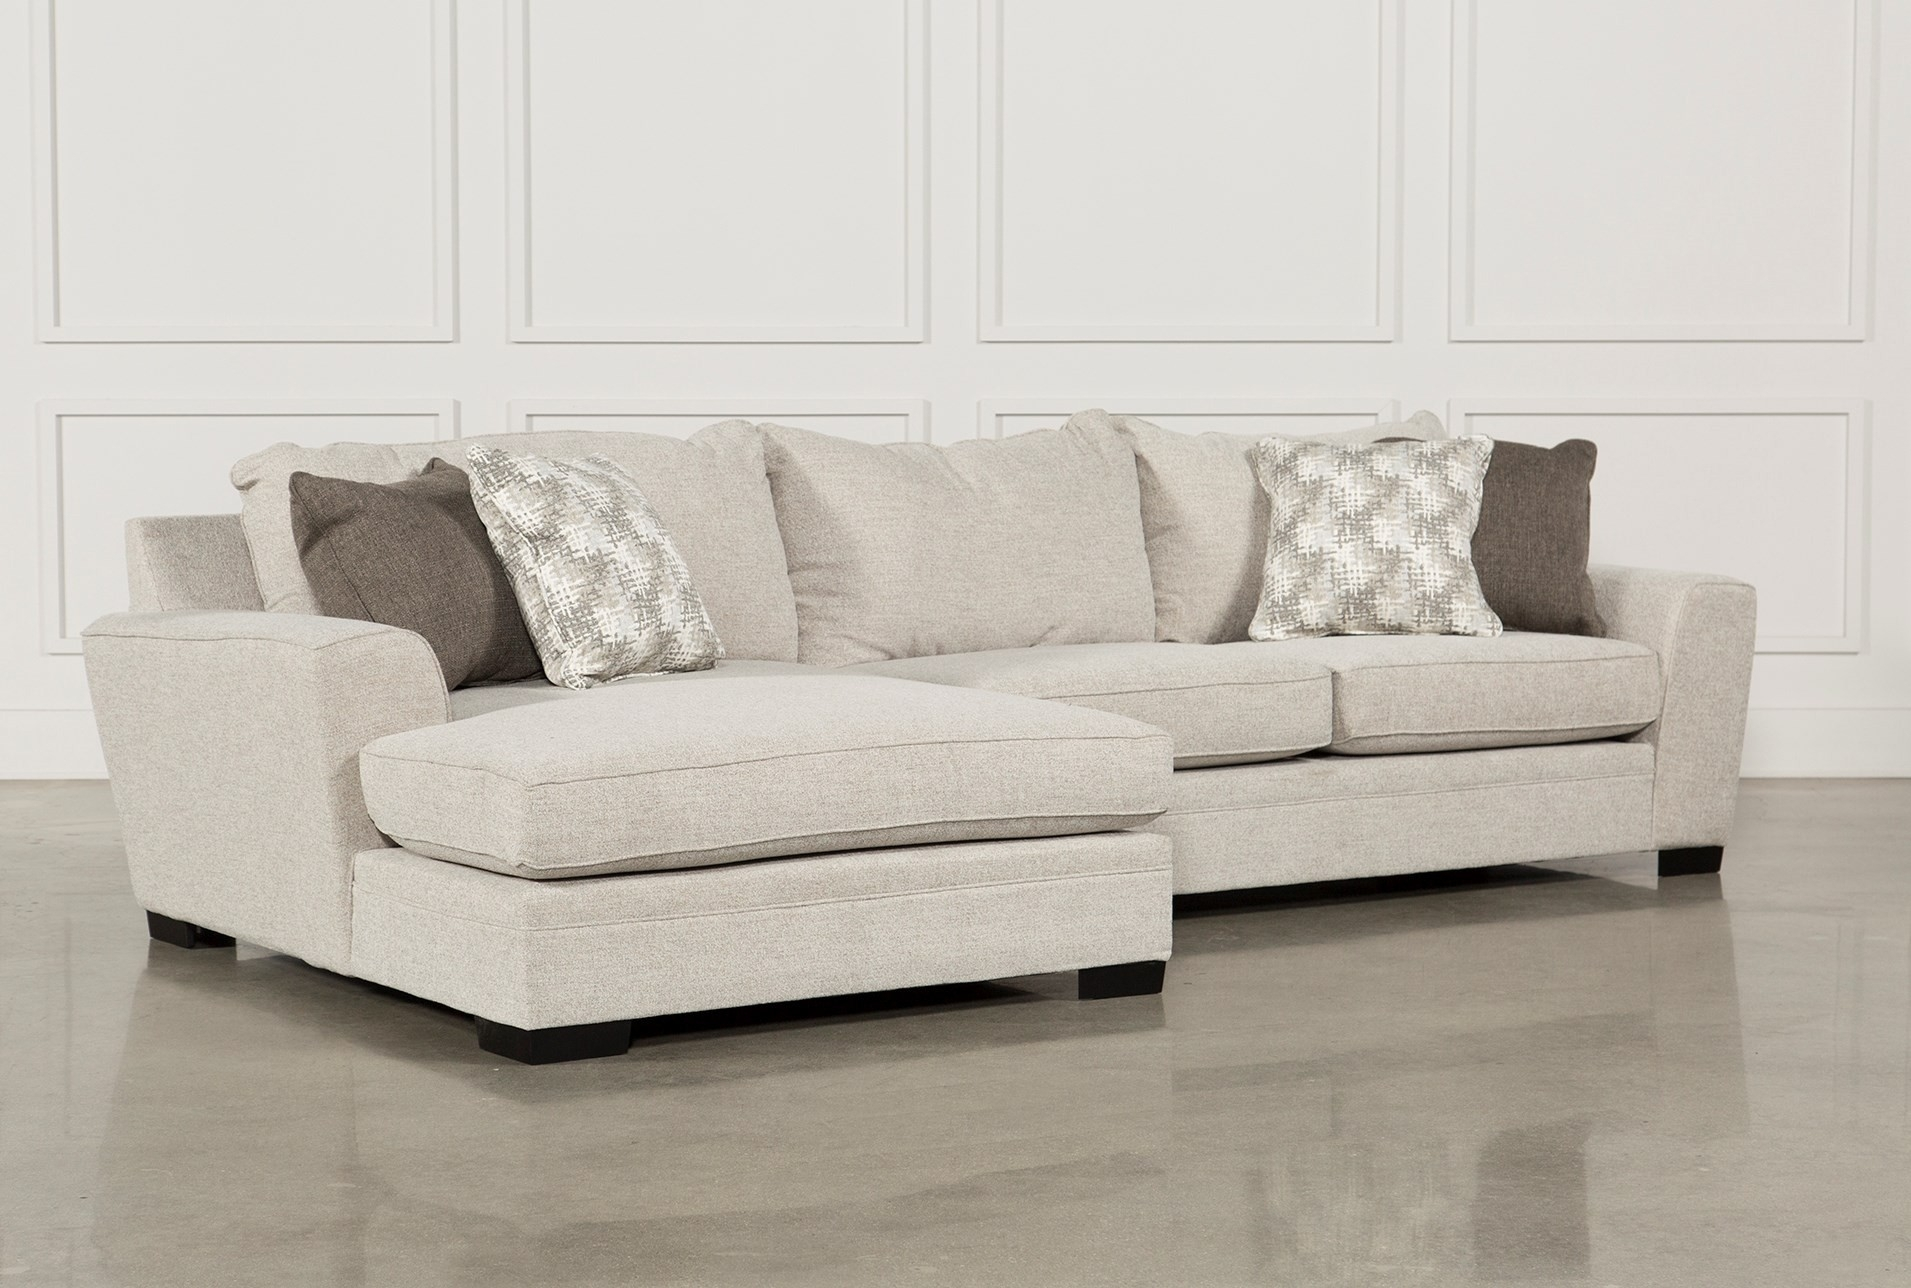 Living Spaces Sectional Sofas - Implantologiabogota.co pertaining to Aspen 2 Piece Sectionals With Laf Chaise (Image 19 of 30)